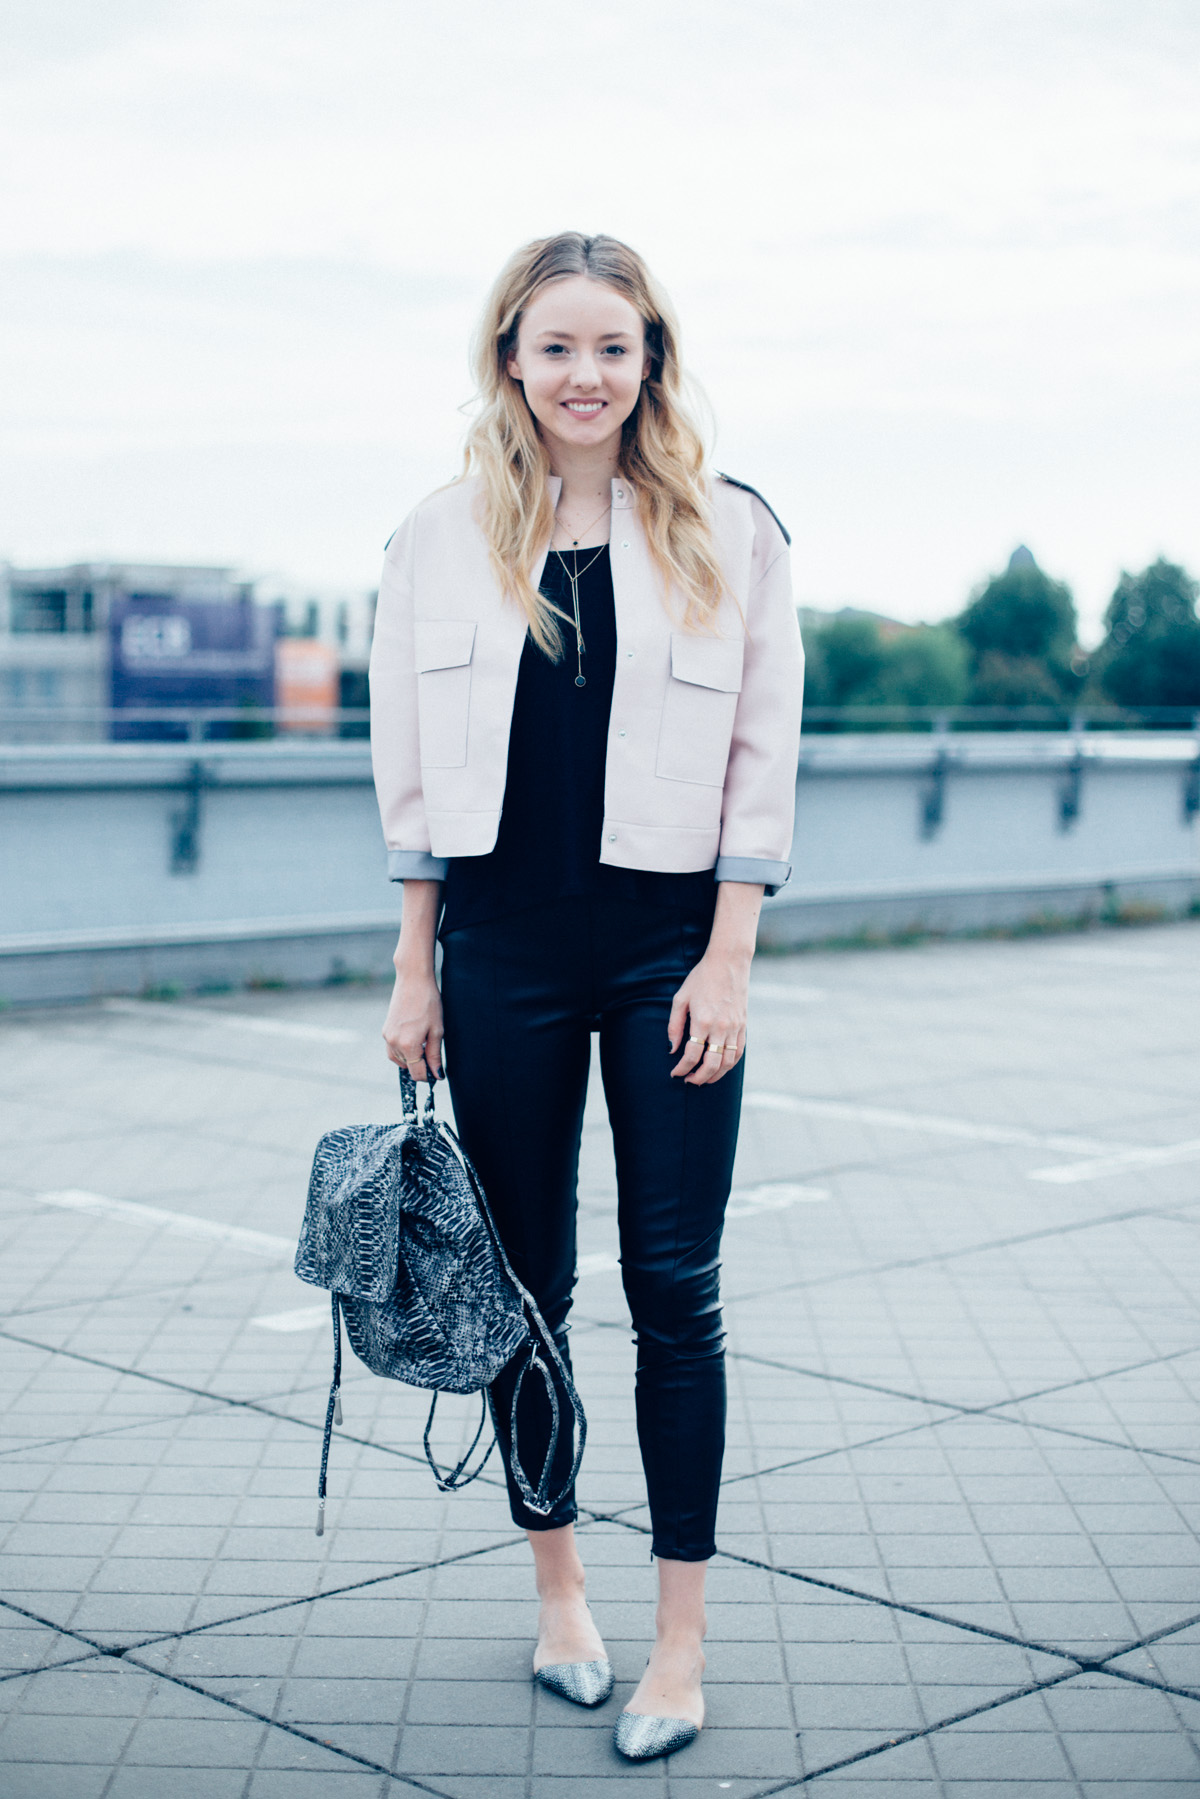 modeblog-fashionblog-deutschland-berlin-blogger-outfit-style